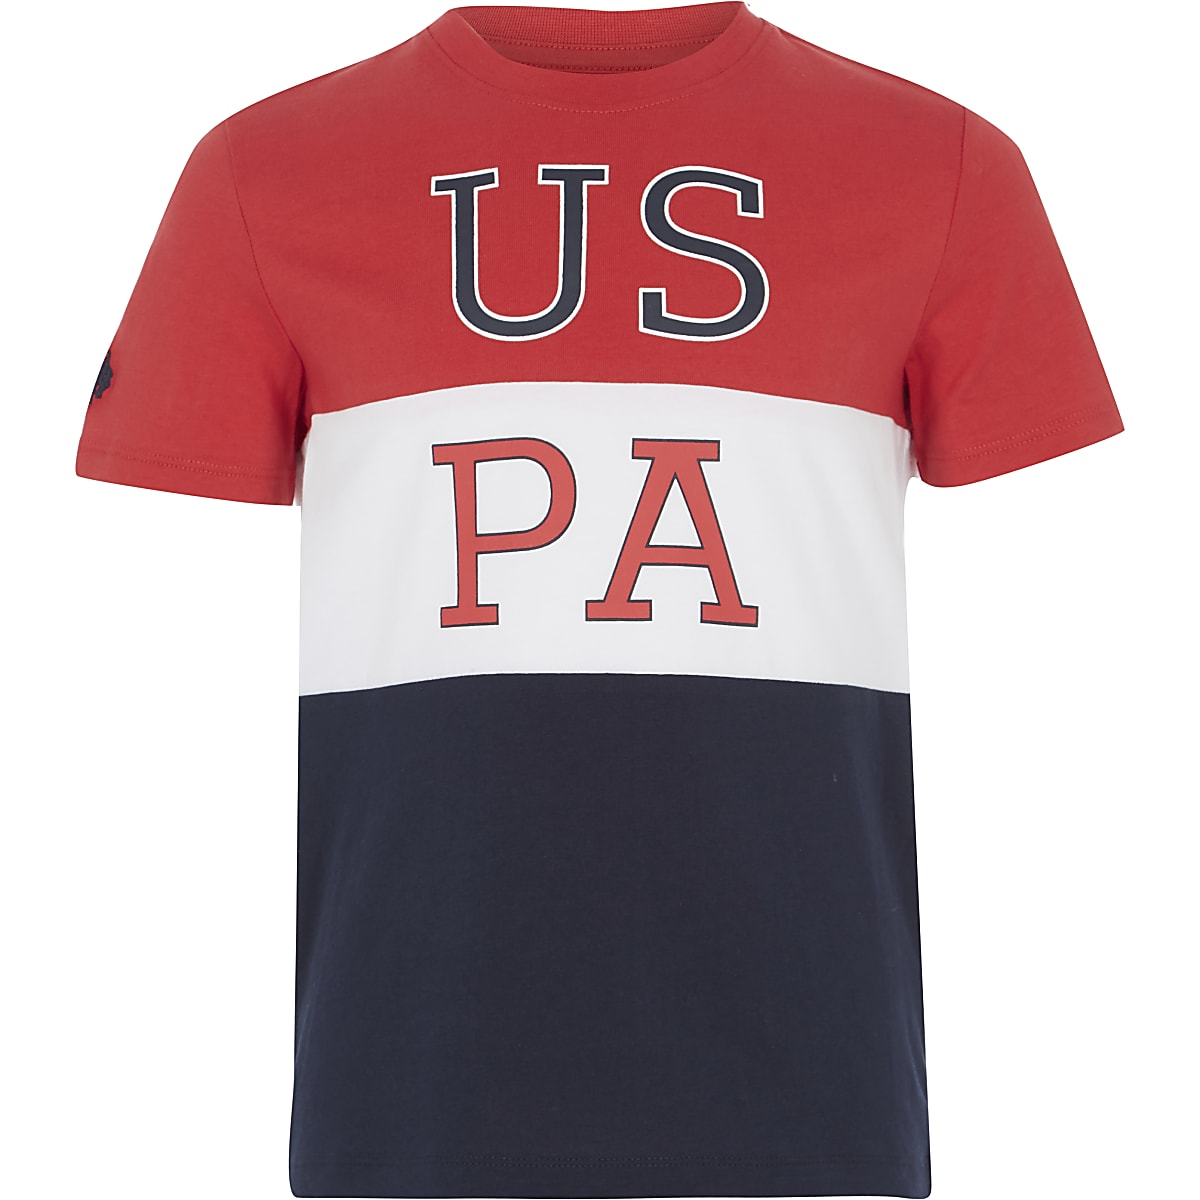 Boys red U.S. Polo Assn. block T-shirt